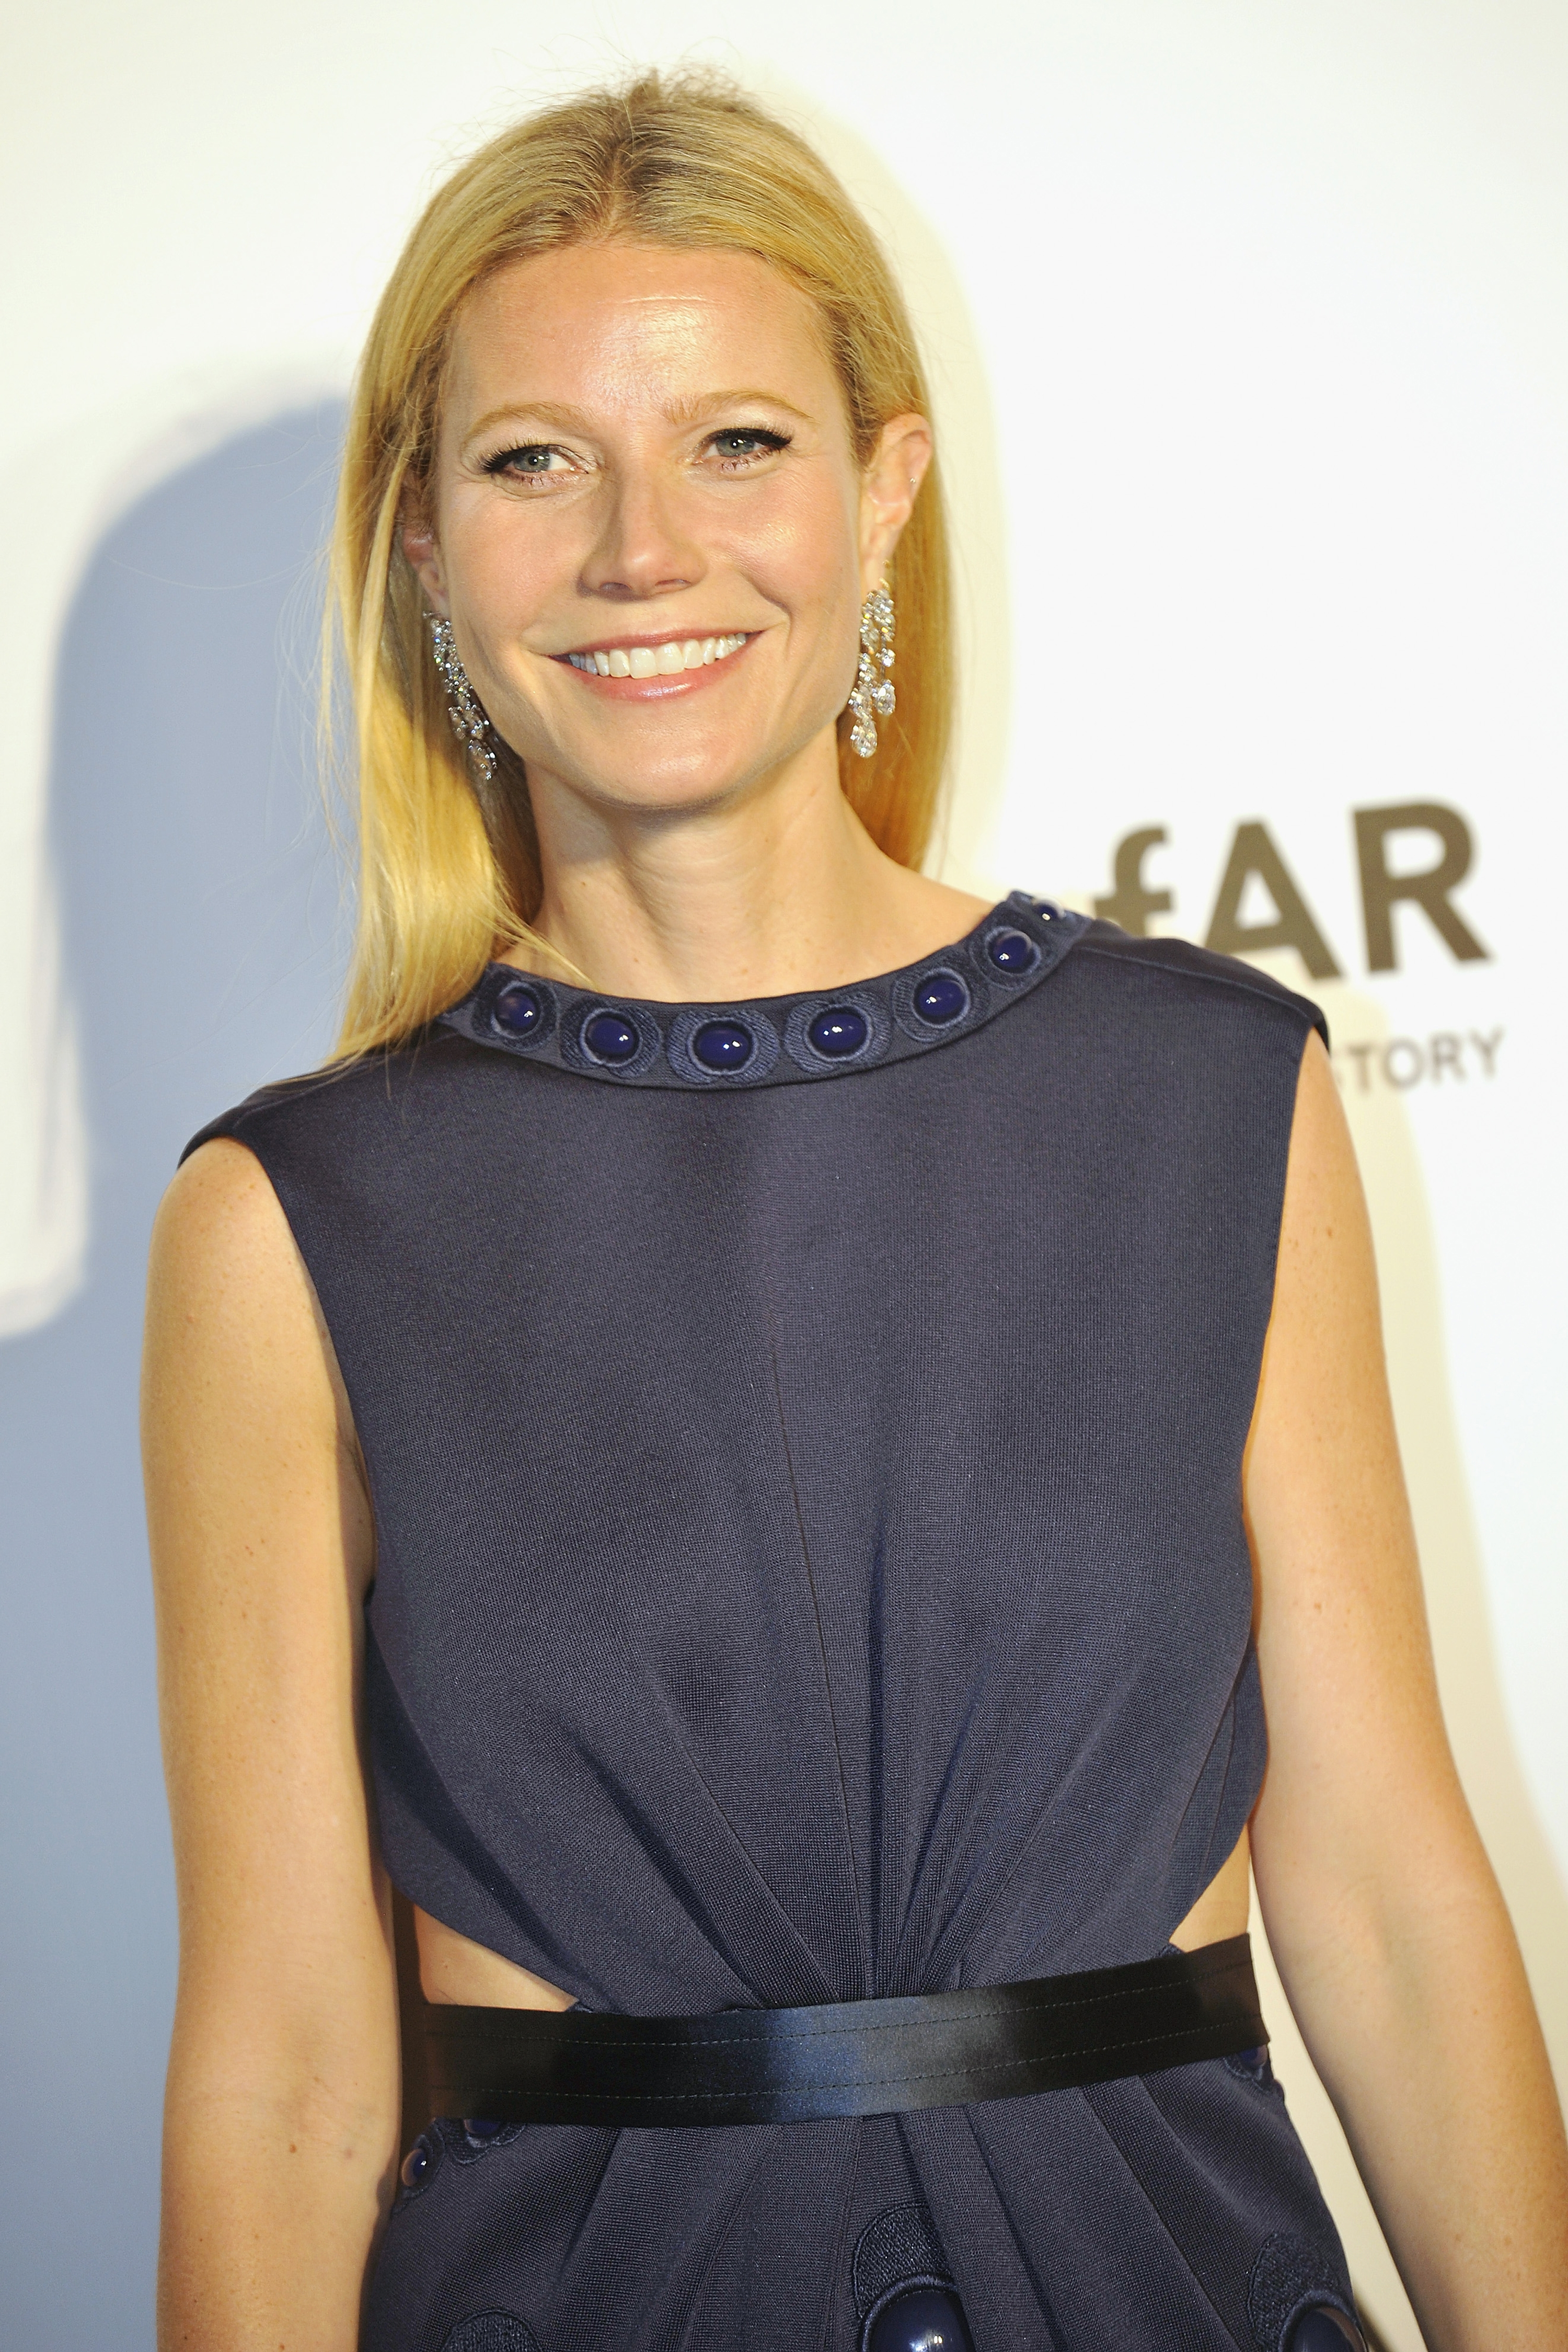 Gwyneth Paltrow arrives on the red carpet during the 2015 amfAR Hong Kong gala at Shaw Studios on March 14, 2015, in Hong Kong. (Lucas Schifres/Abaca Press/TNS)